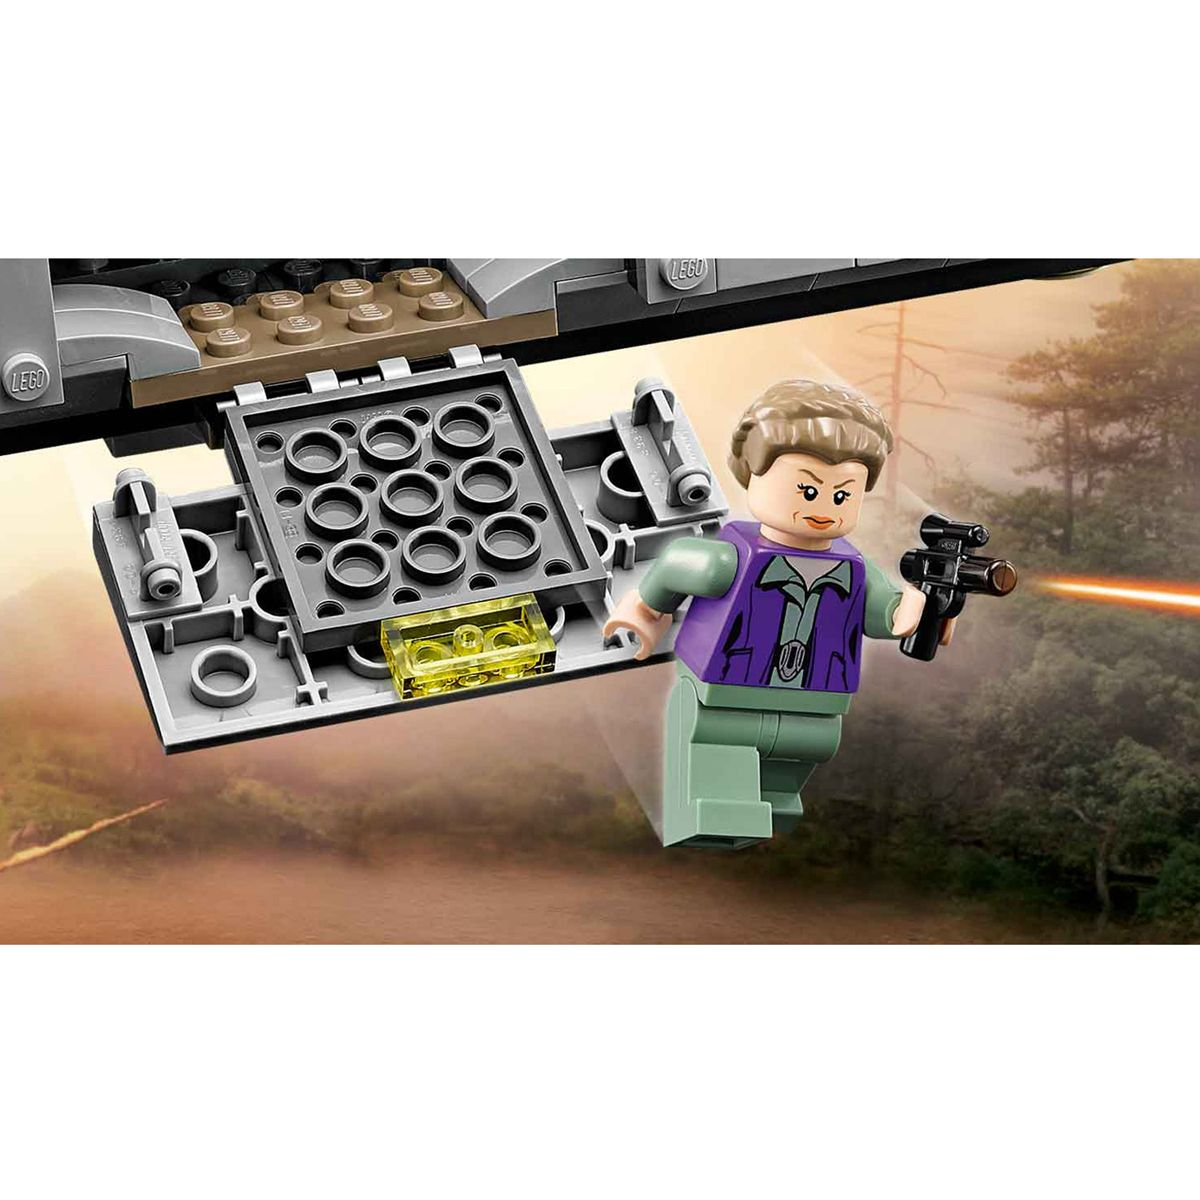 Resistance Troop Transporter Lego® Star Wars 354jLqAR